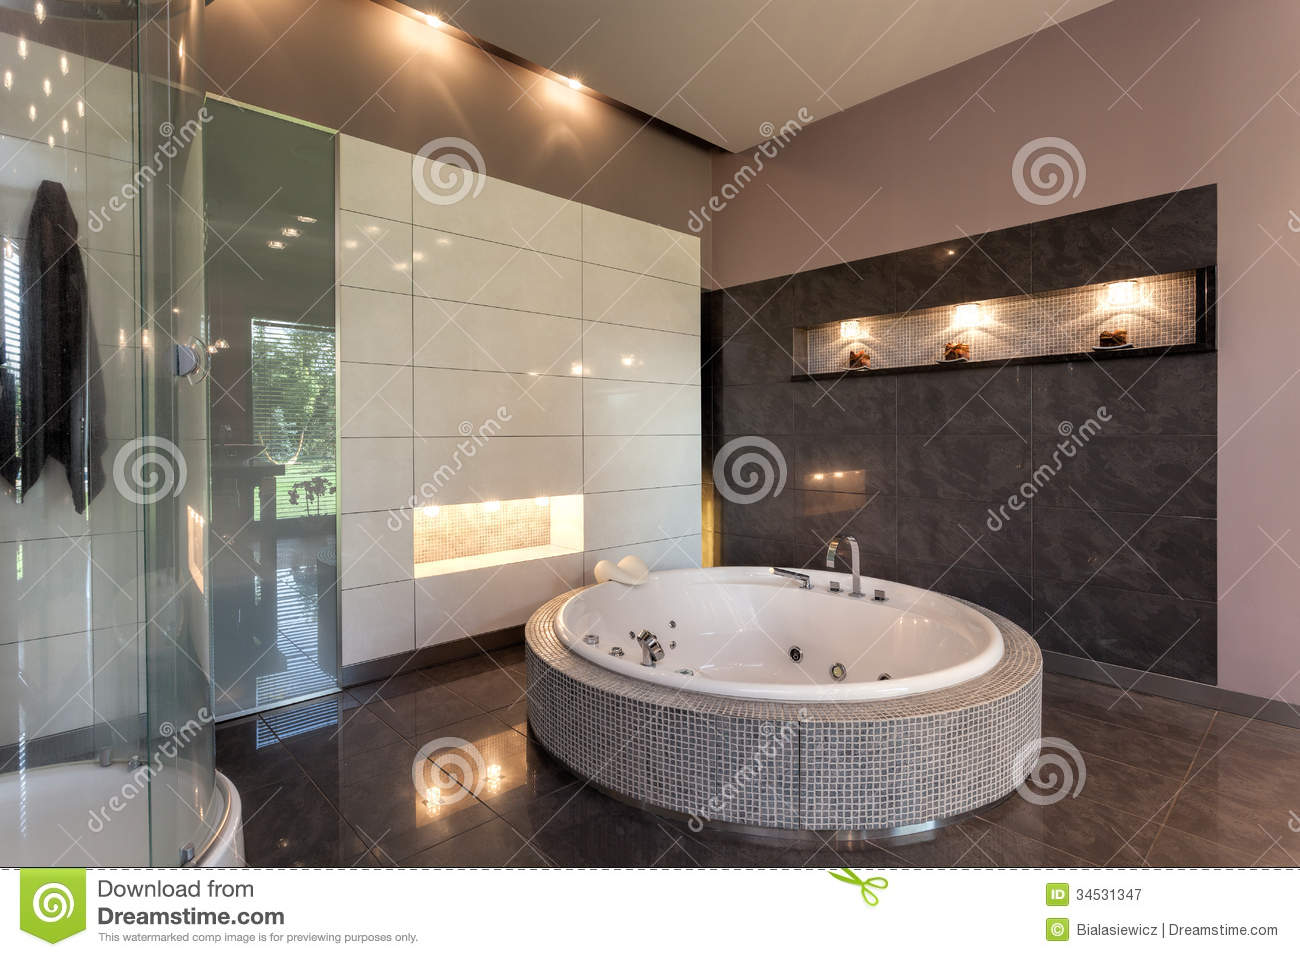 Round Bath In A Luxury Mansion Stock Image - Image of mansion ... on bathroom design chair, bedroom with bathtub, bathroom design mirror, bathroom corner tub, bathroom idea rustic cabins, bathroom tub ideas, shower with bathtub, bathroom bath tub, stylish bathroom with bathtub, bathroom floor tile pattern, bathroom design ideas, bathroom tub designs, bathroom design toilet, tile with bathtub, remodel with bathtub, bathroom layout with bathtub, bathroom shower tub, bathroom design shower, kitchen with bathtub, beautiful bathroom with bathtub,